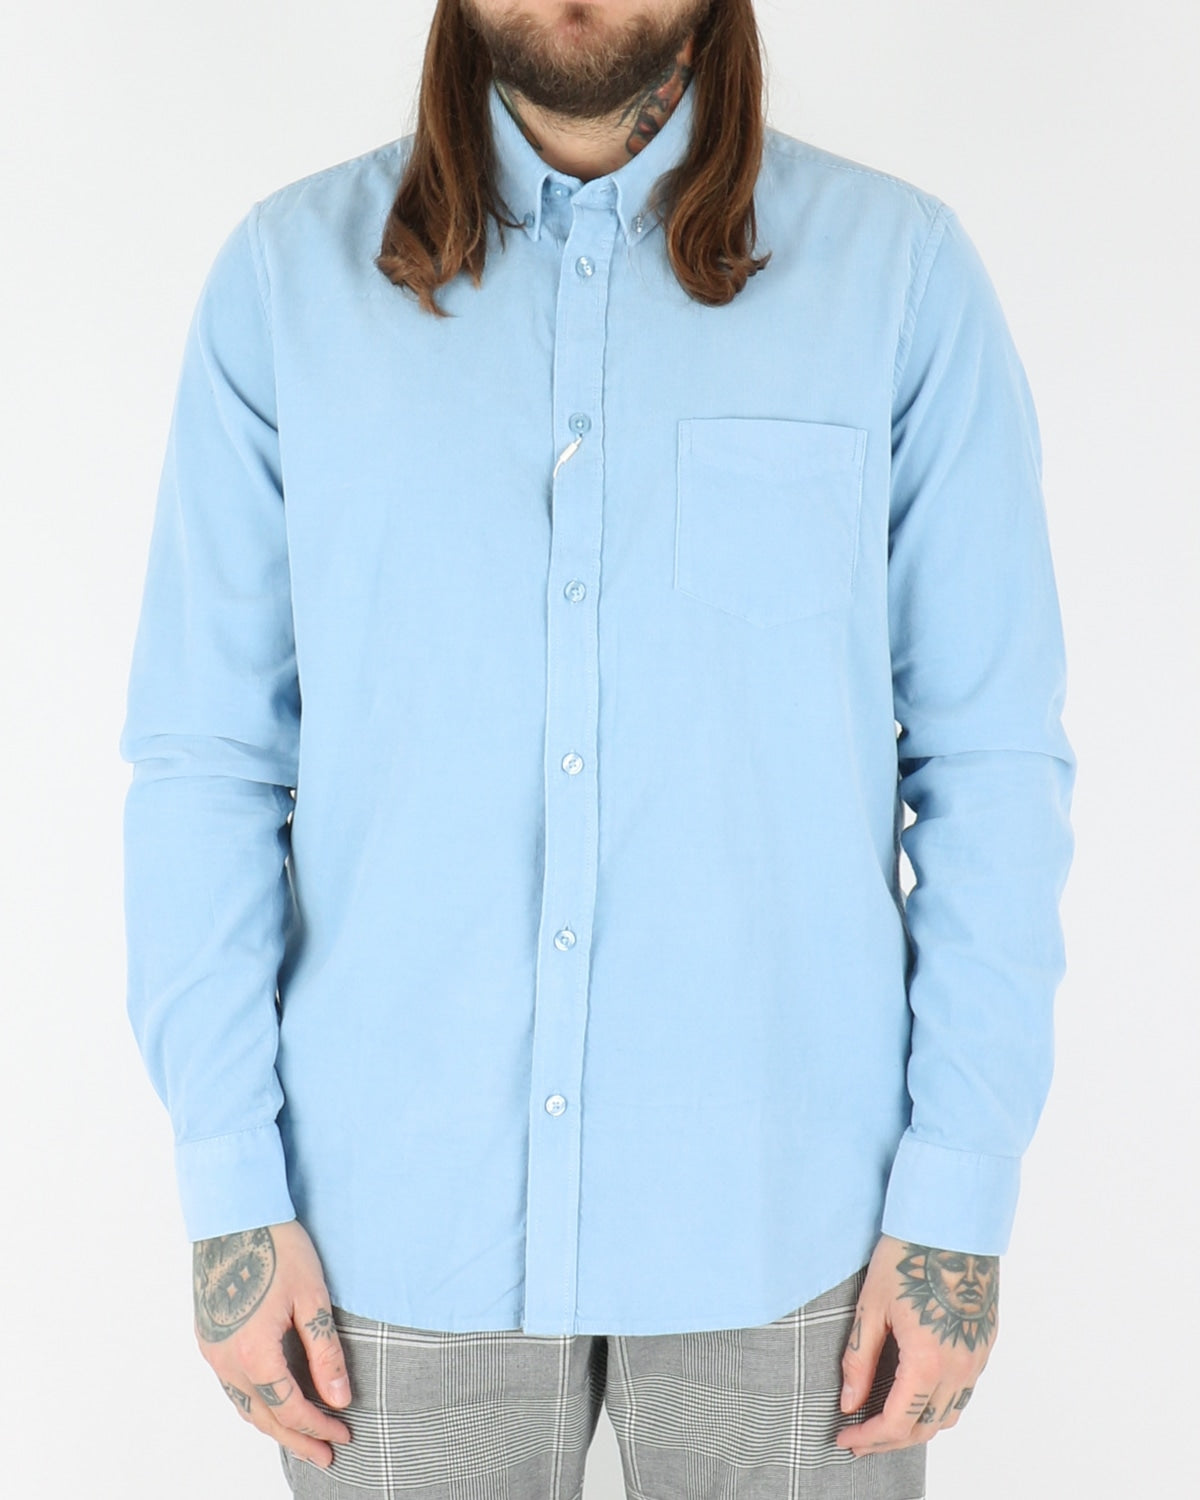 samsoe samsoe_liam shirt_bel air blue_view_1_3